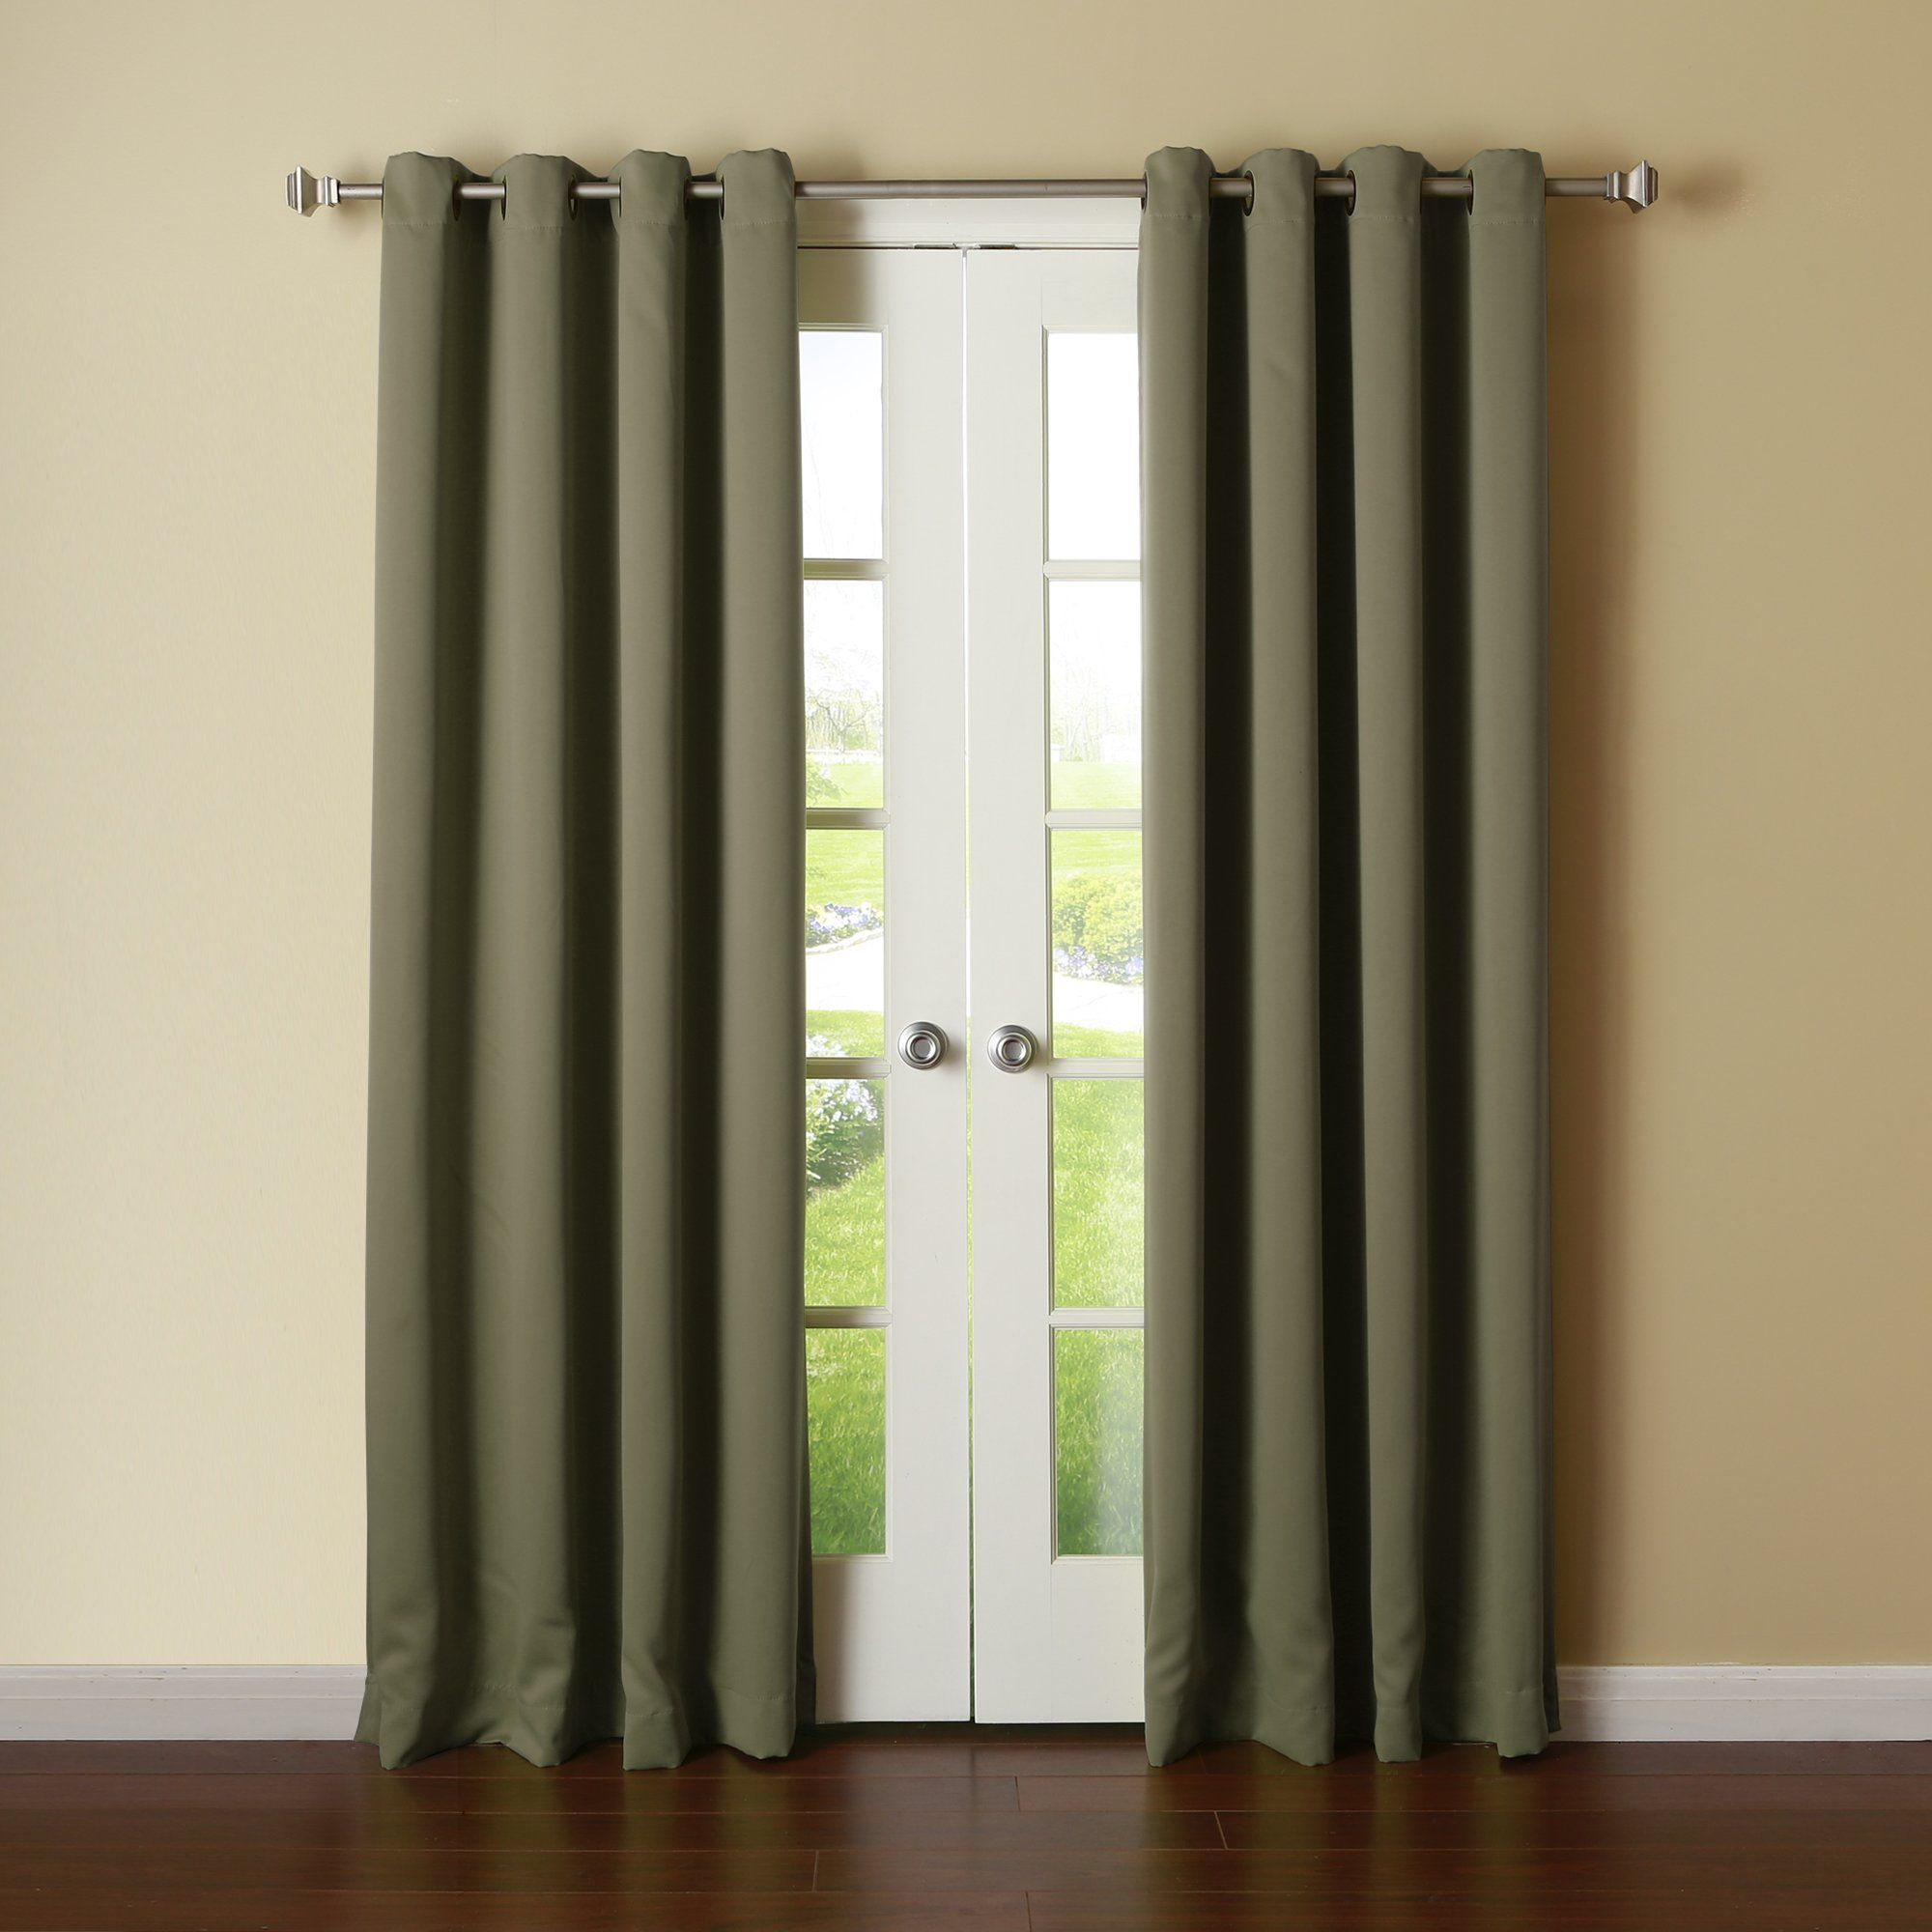 patio blackout images by curtainsthermal thermal door design rods curtains remarkable curtain at insulated amazon